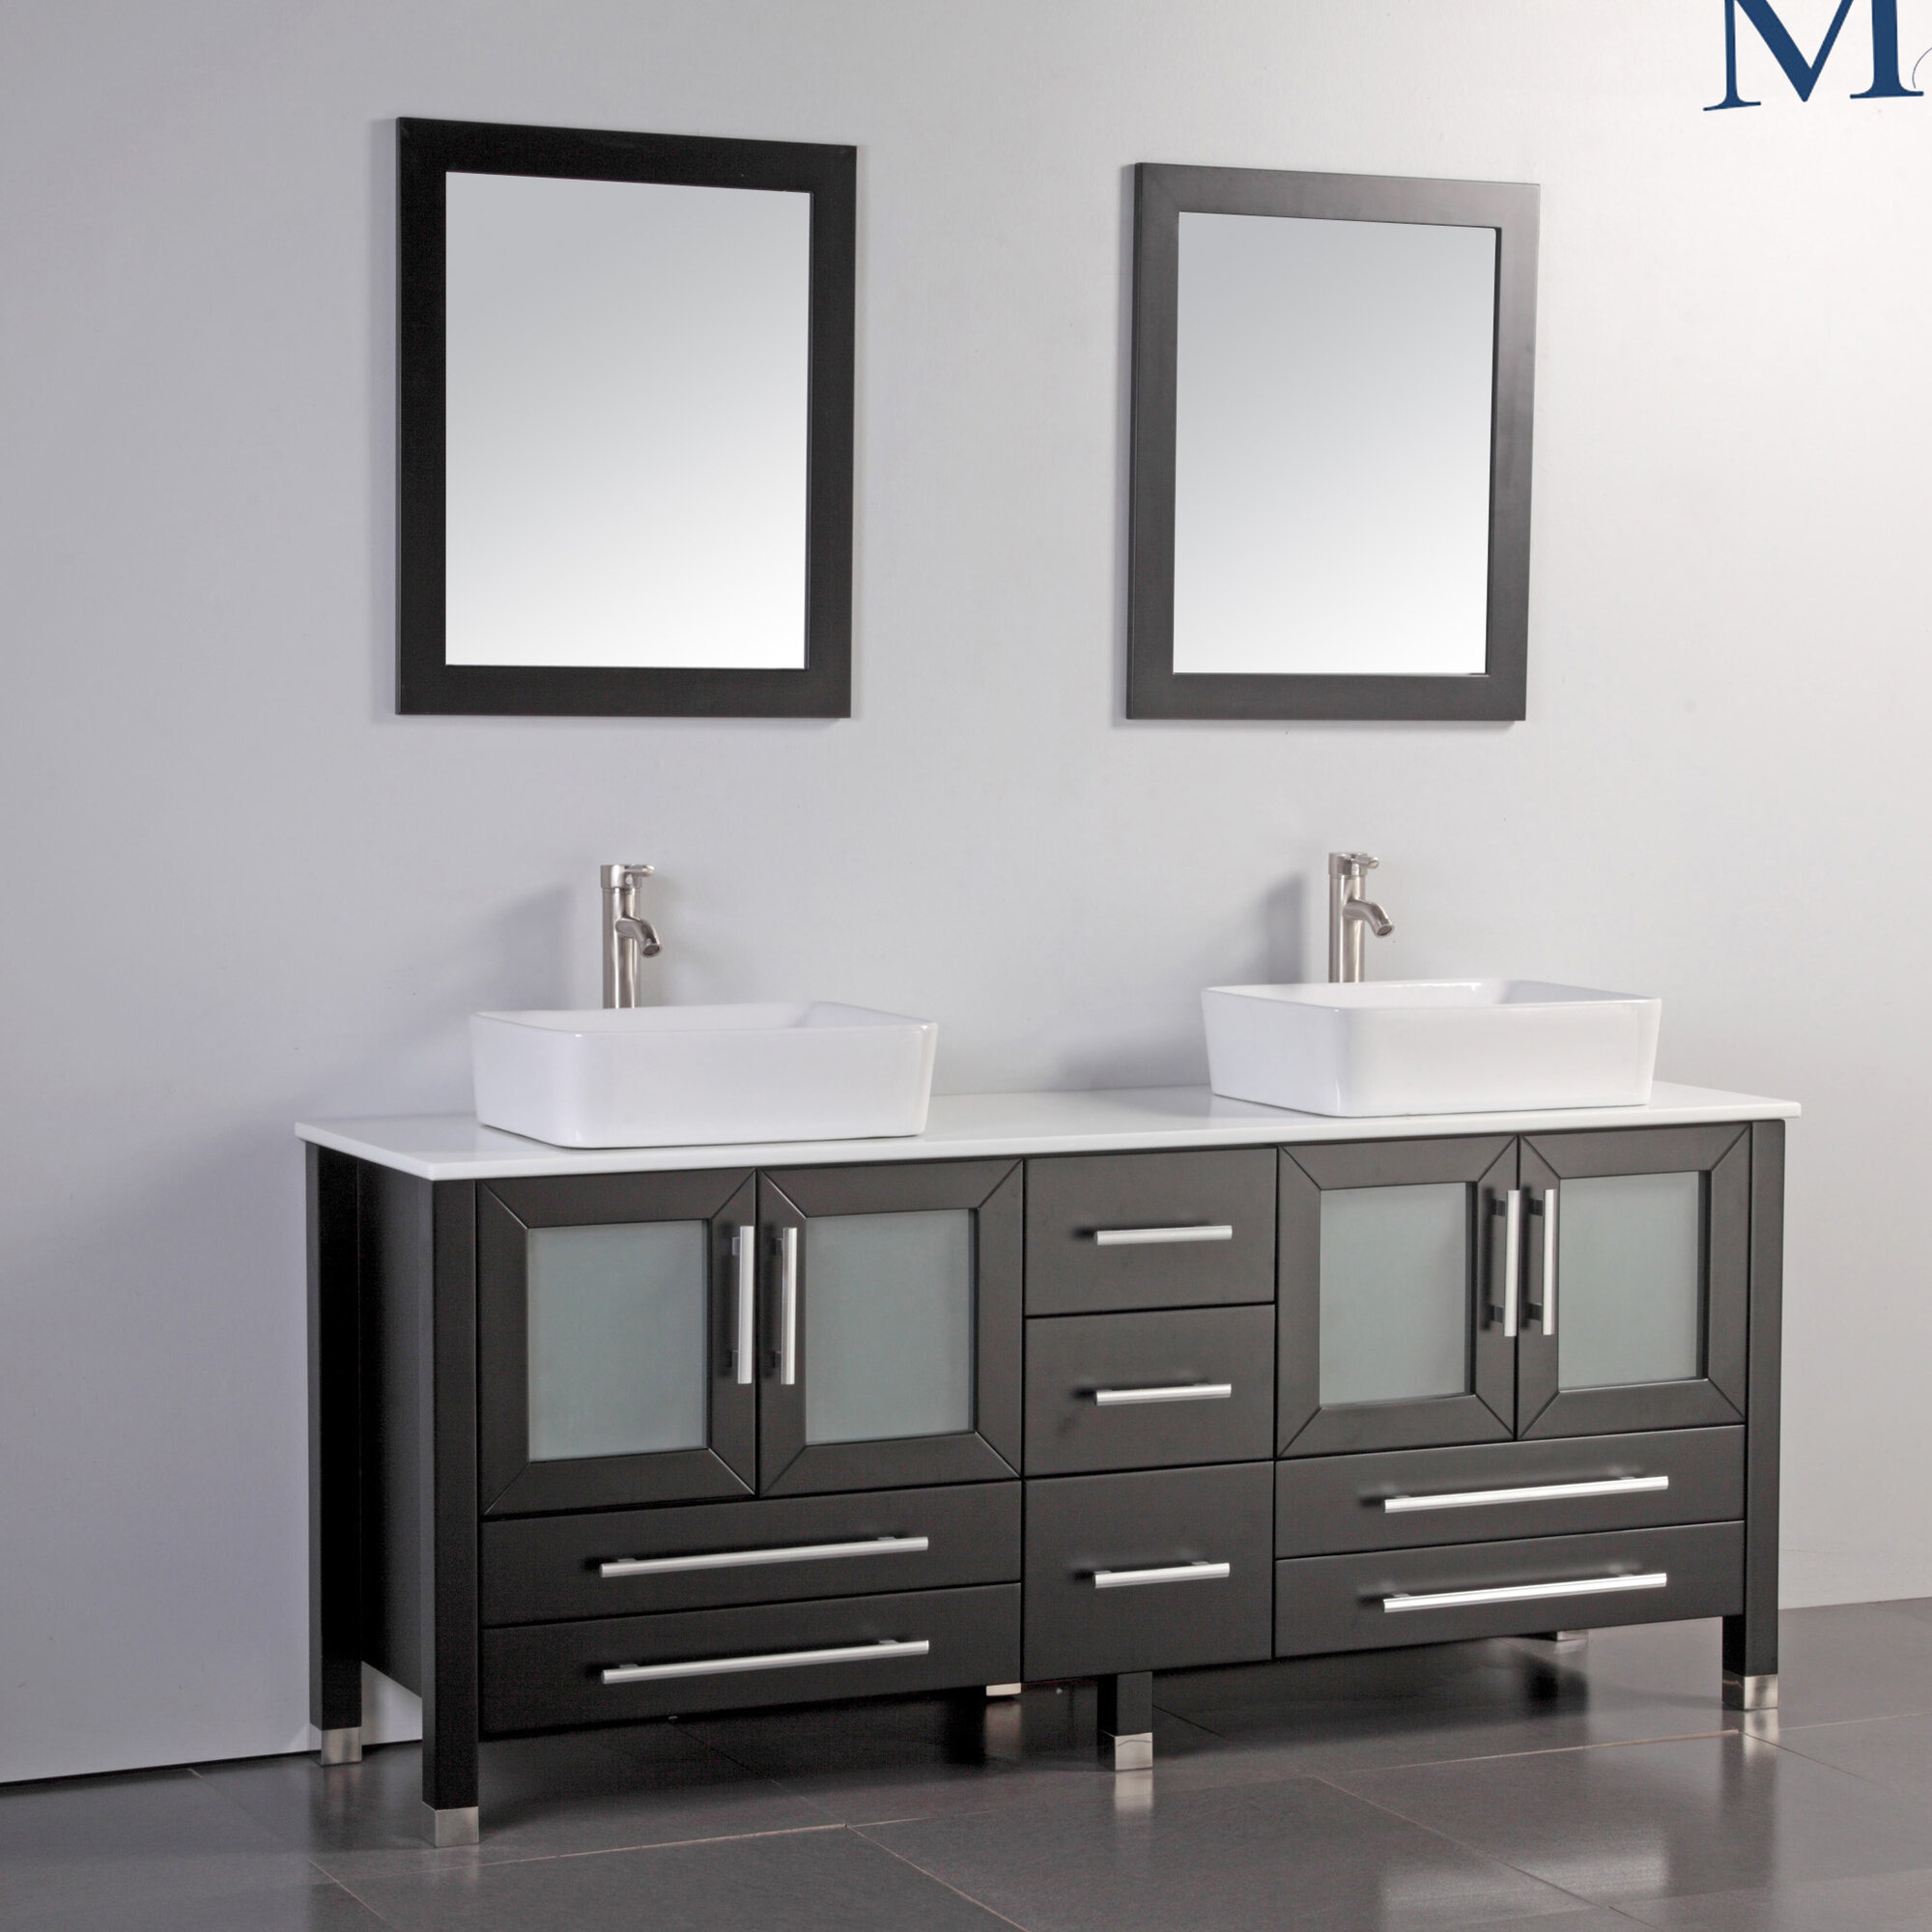 Malta 61 quot double sink bathroom vanity set with mirror espresso ebay